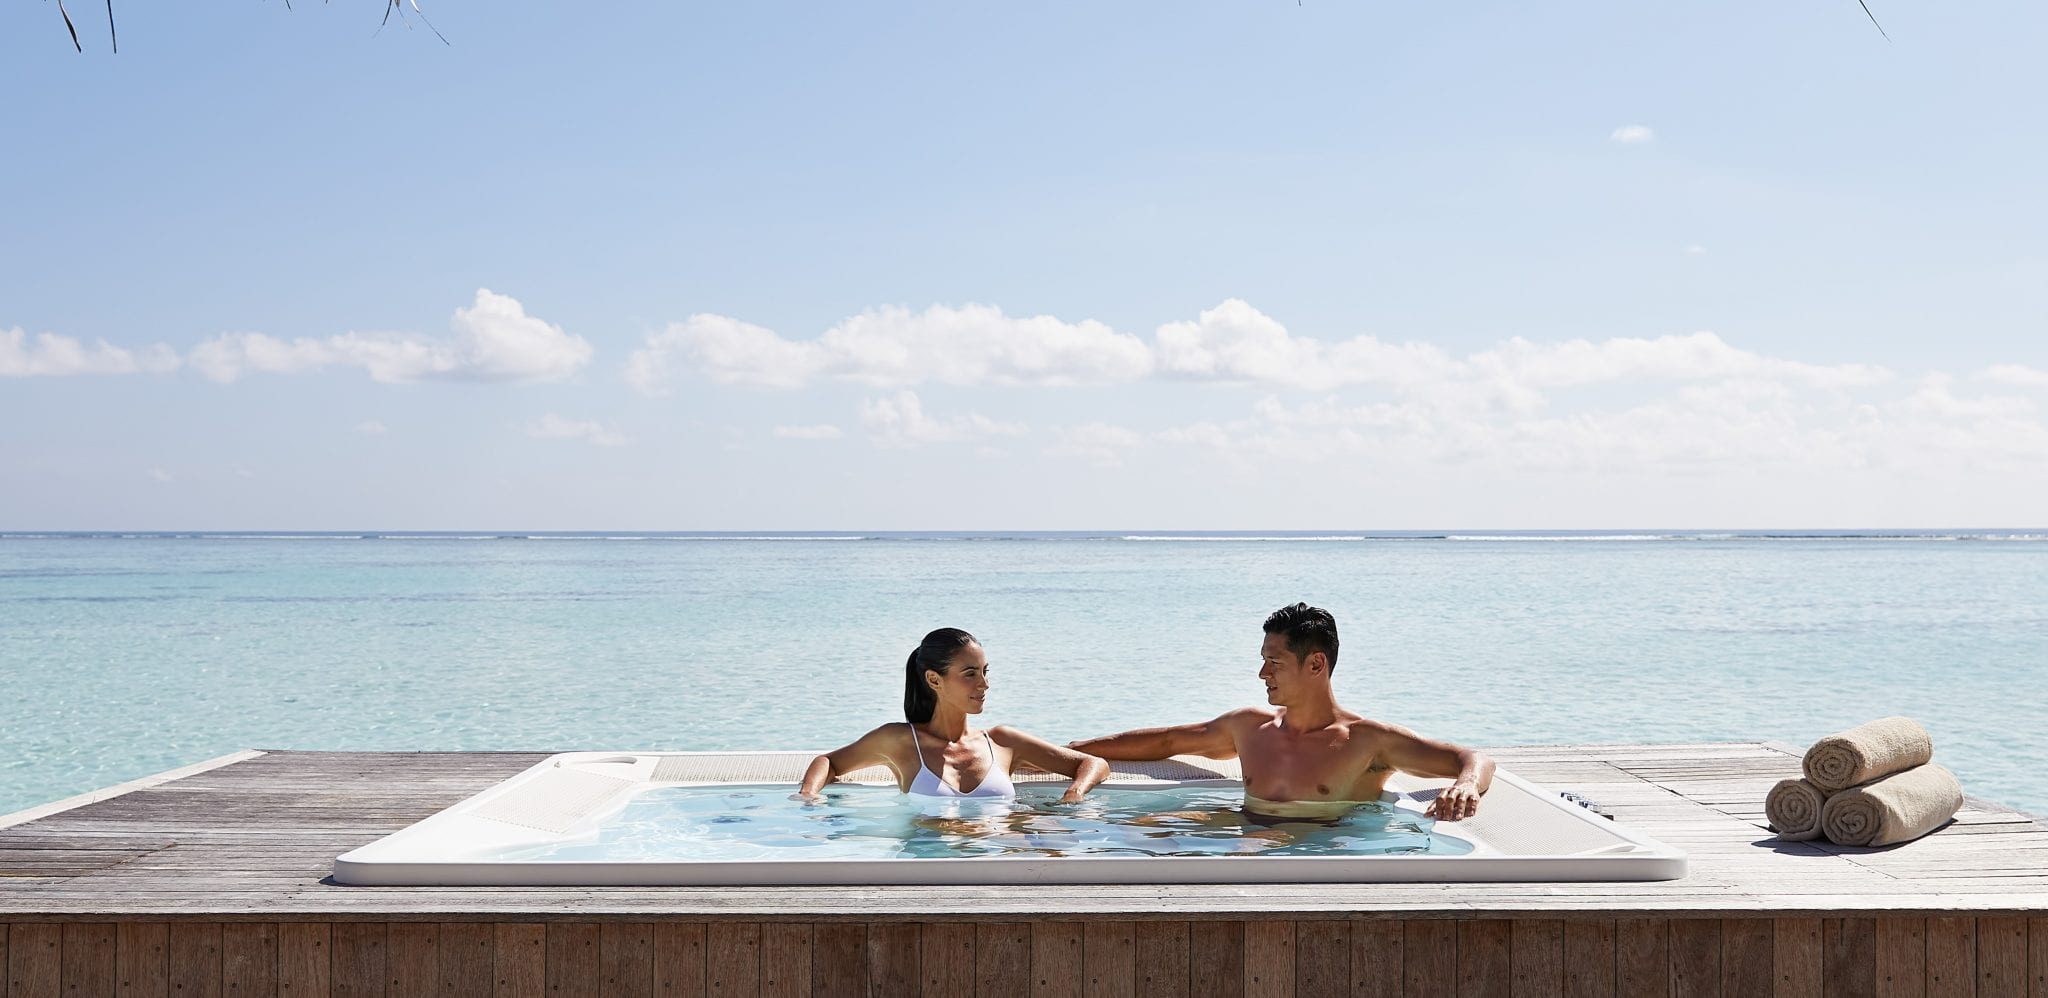 Spa Treatments Worth Coupling For - Conrad Hotels & Resorts